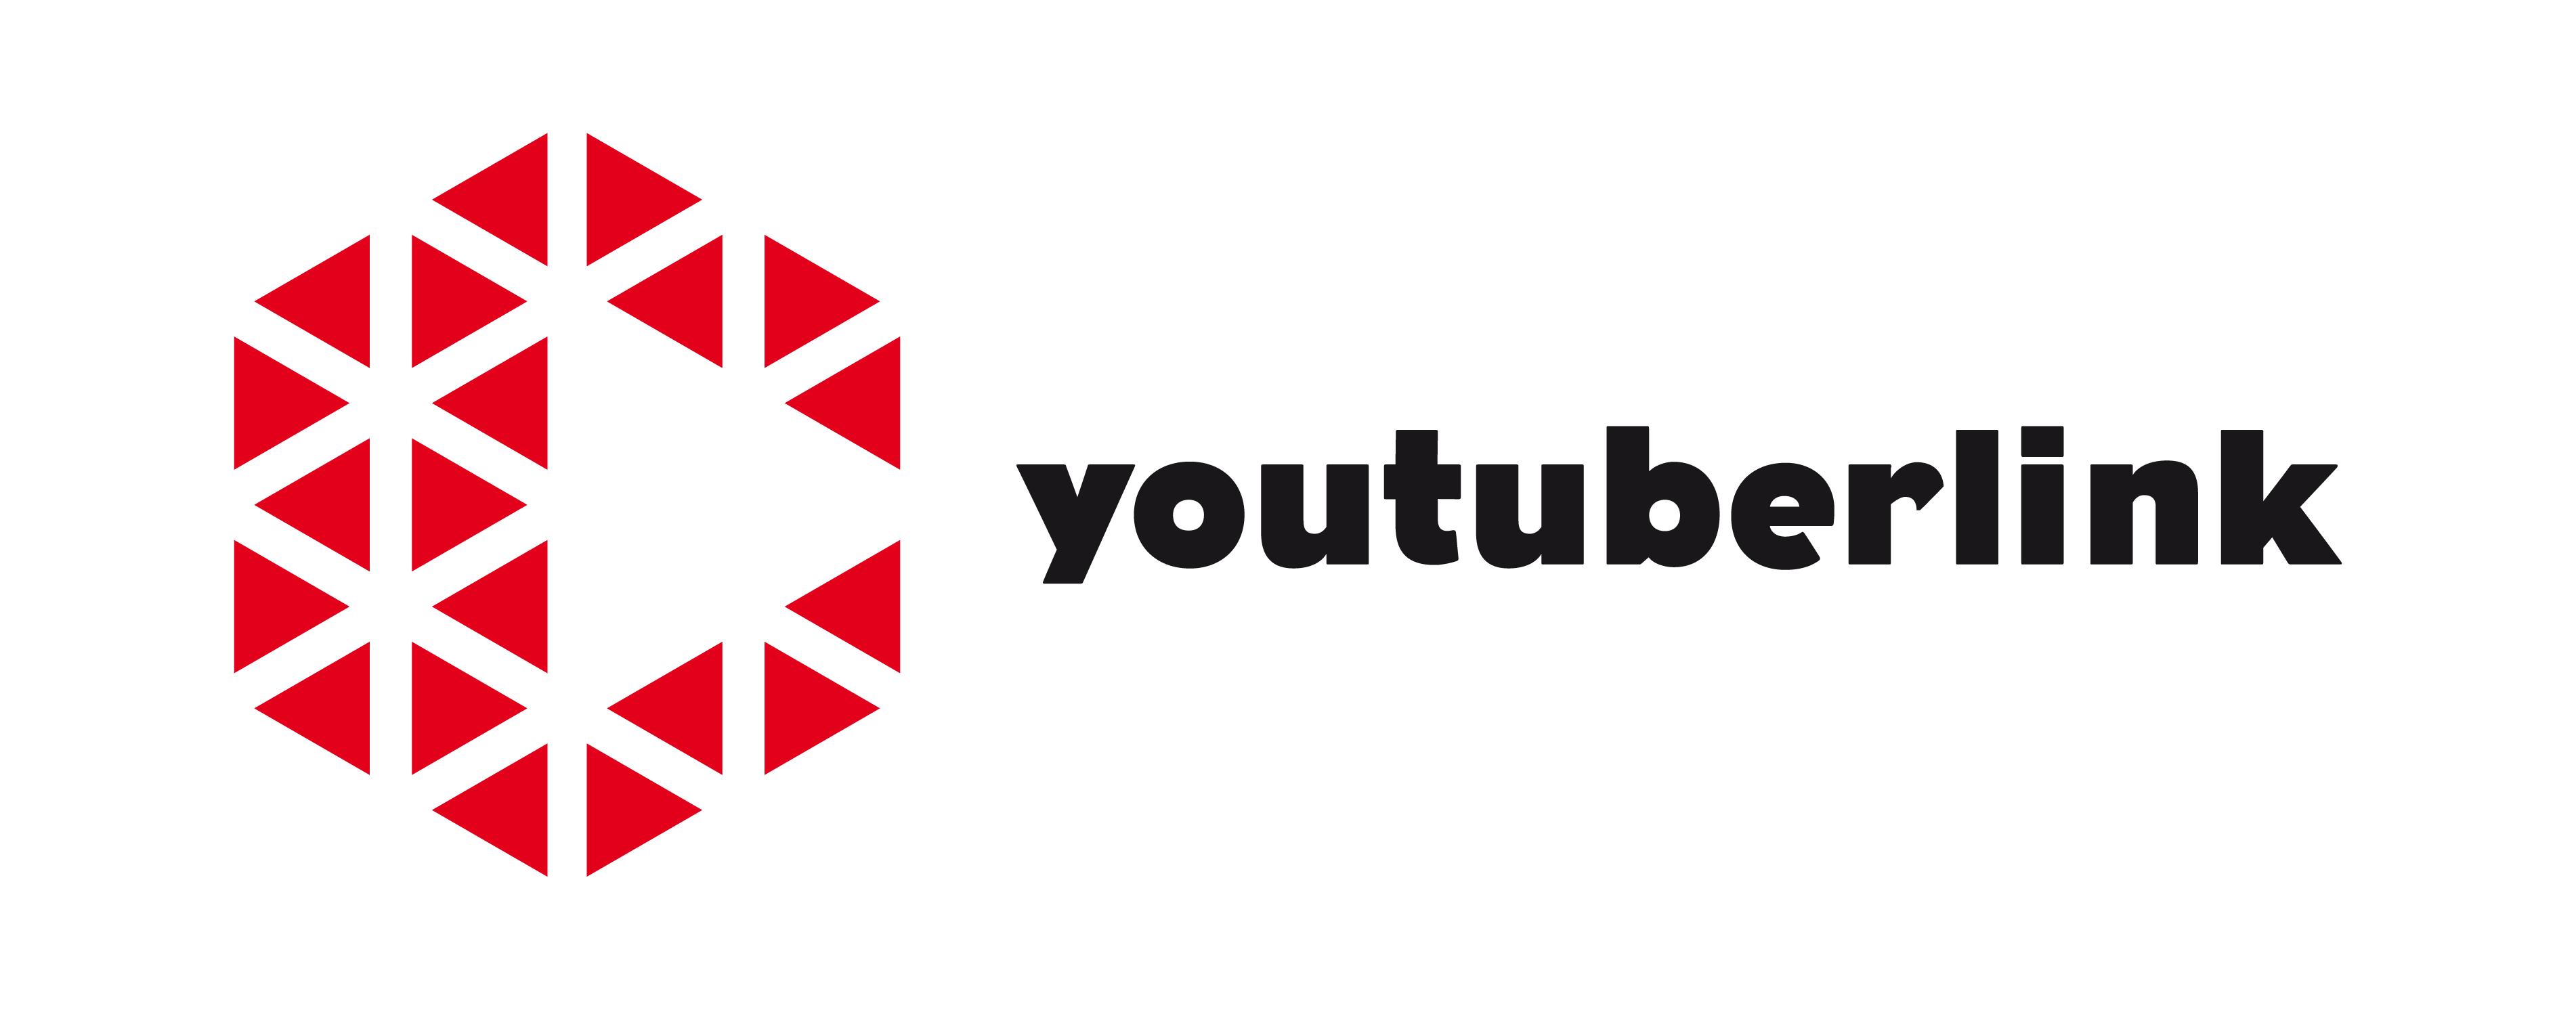 YouTuberLink